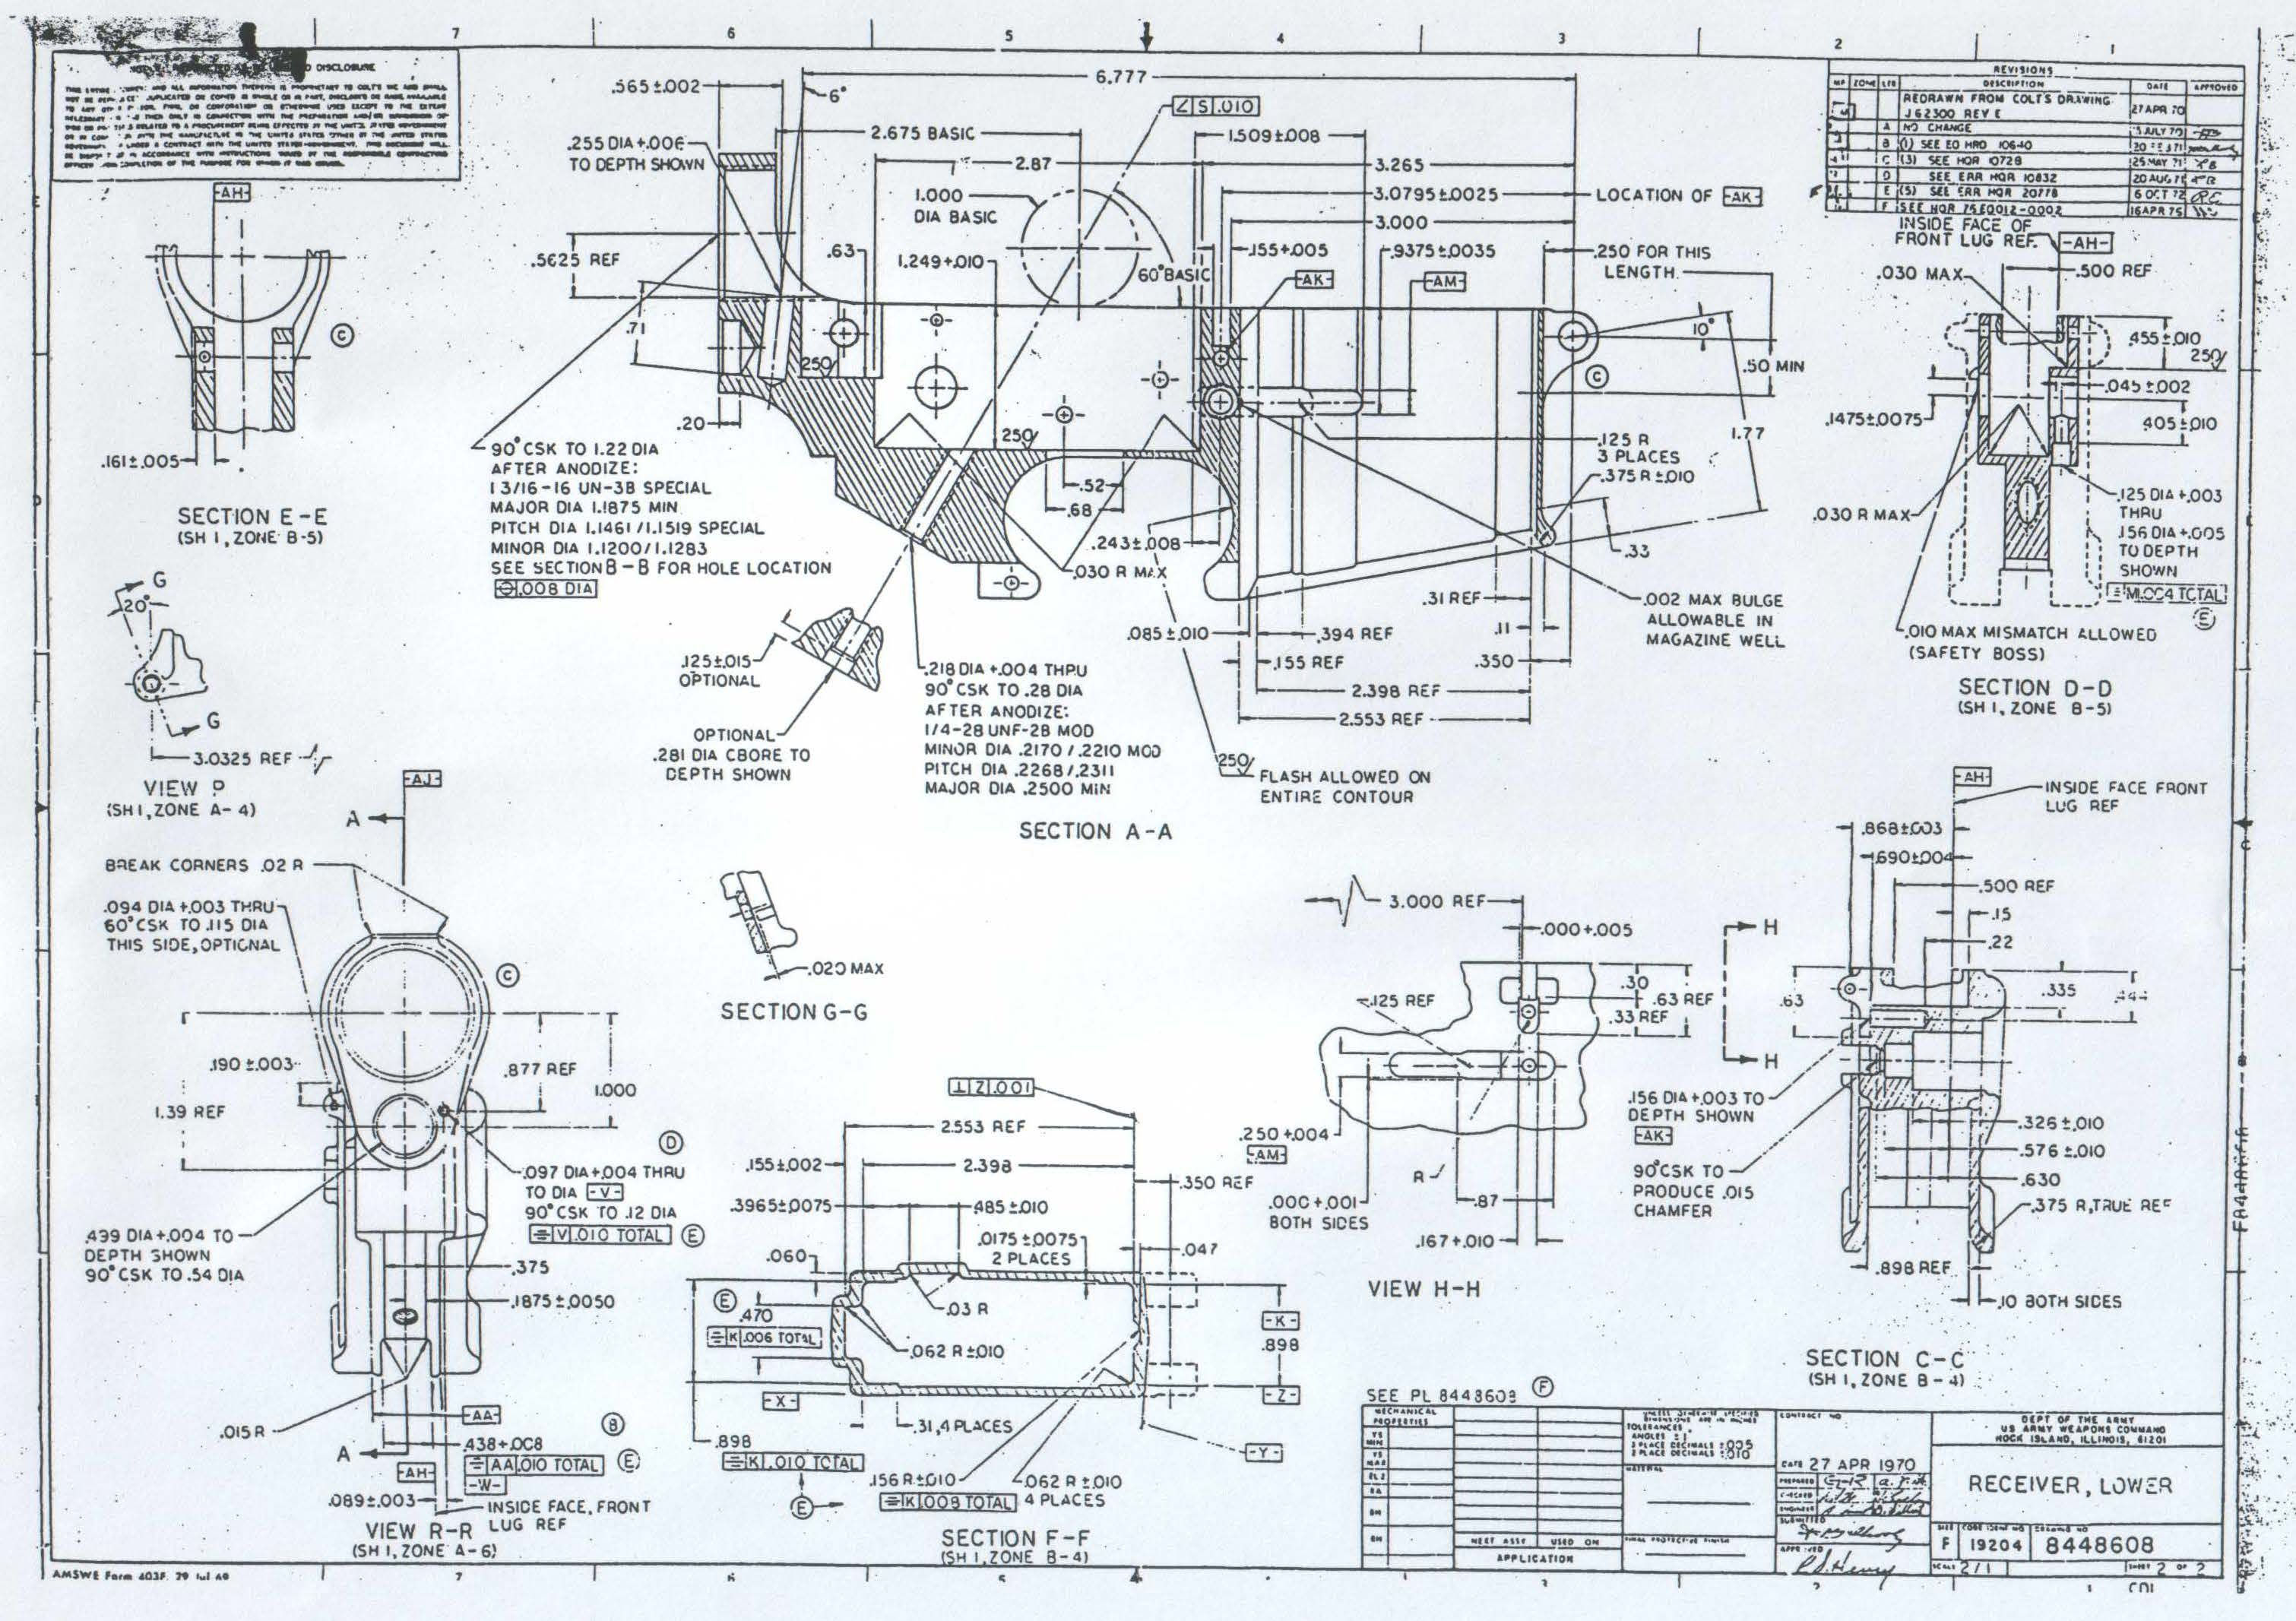 hight resolution of original army ordinance department blueprints for the ar 15 lower reciever